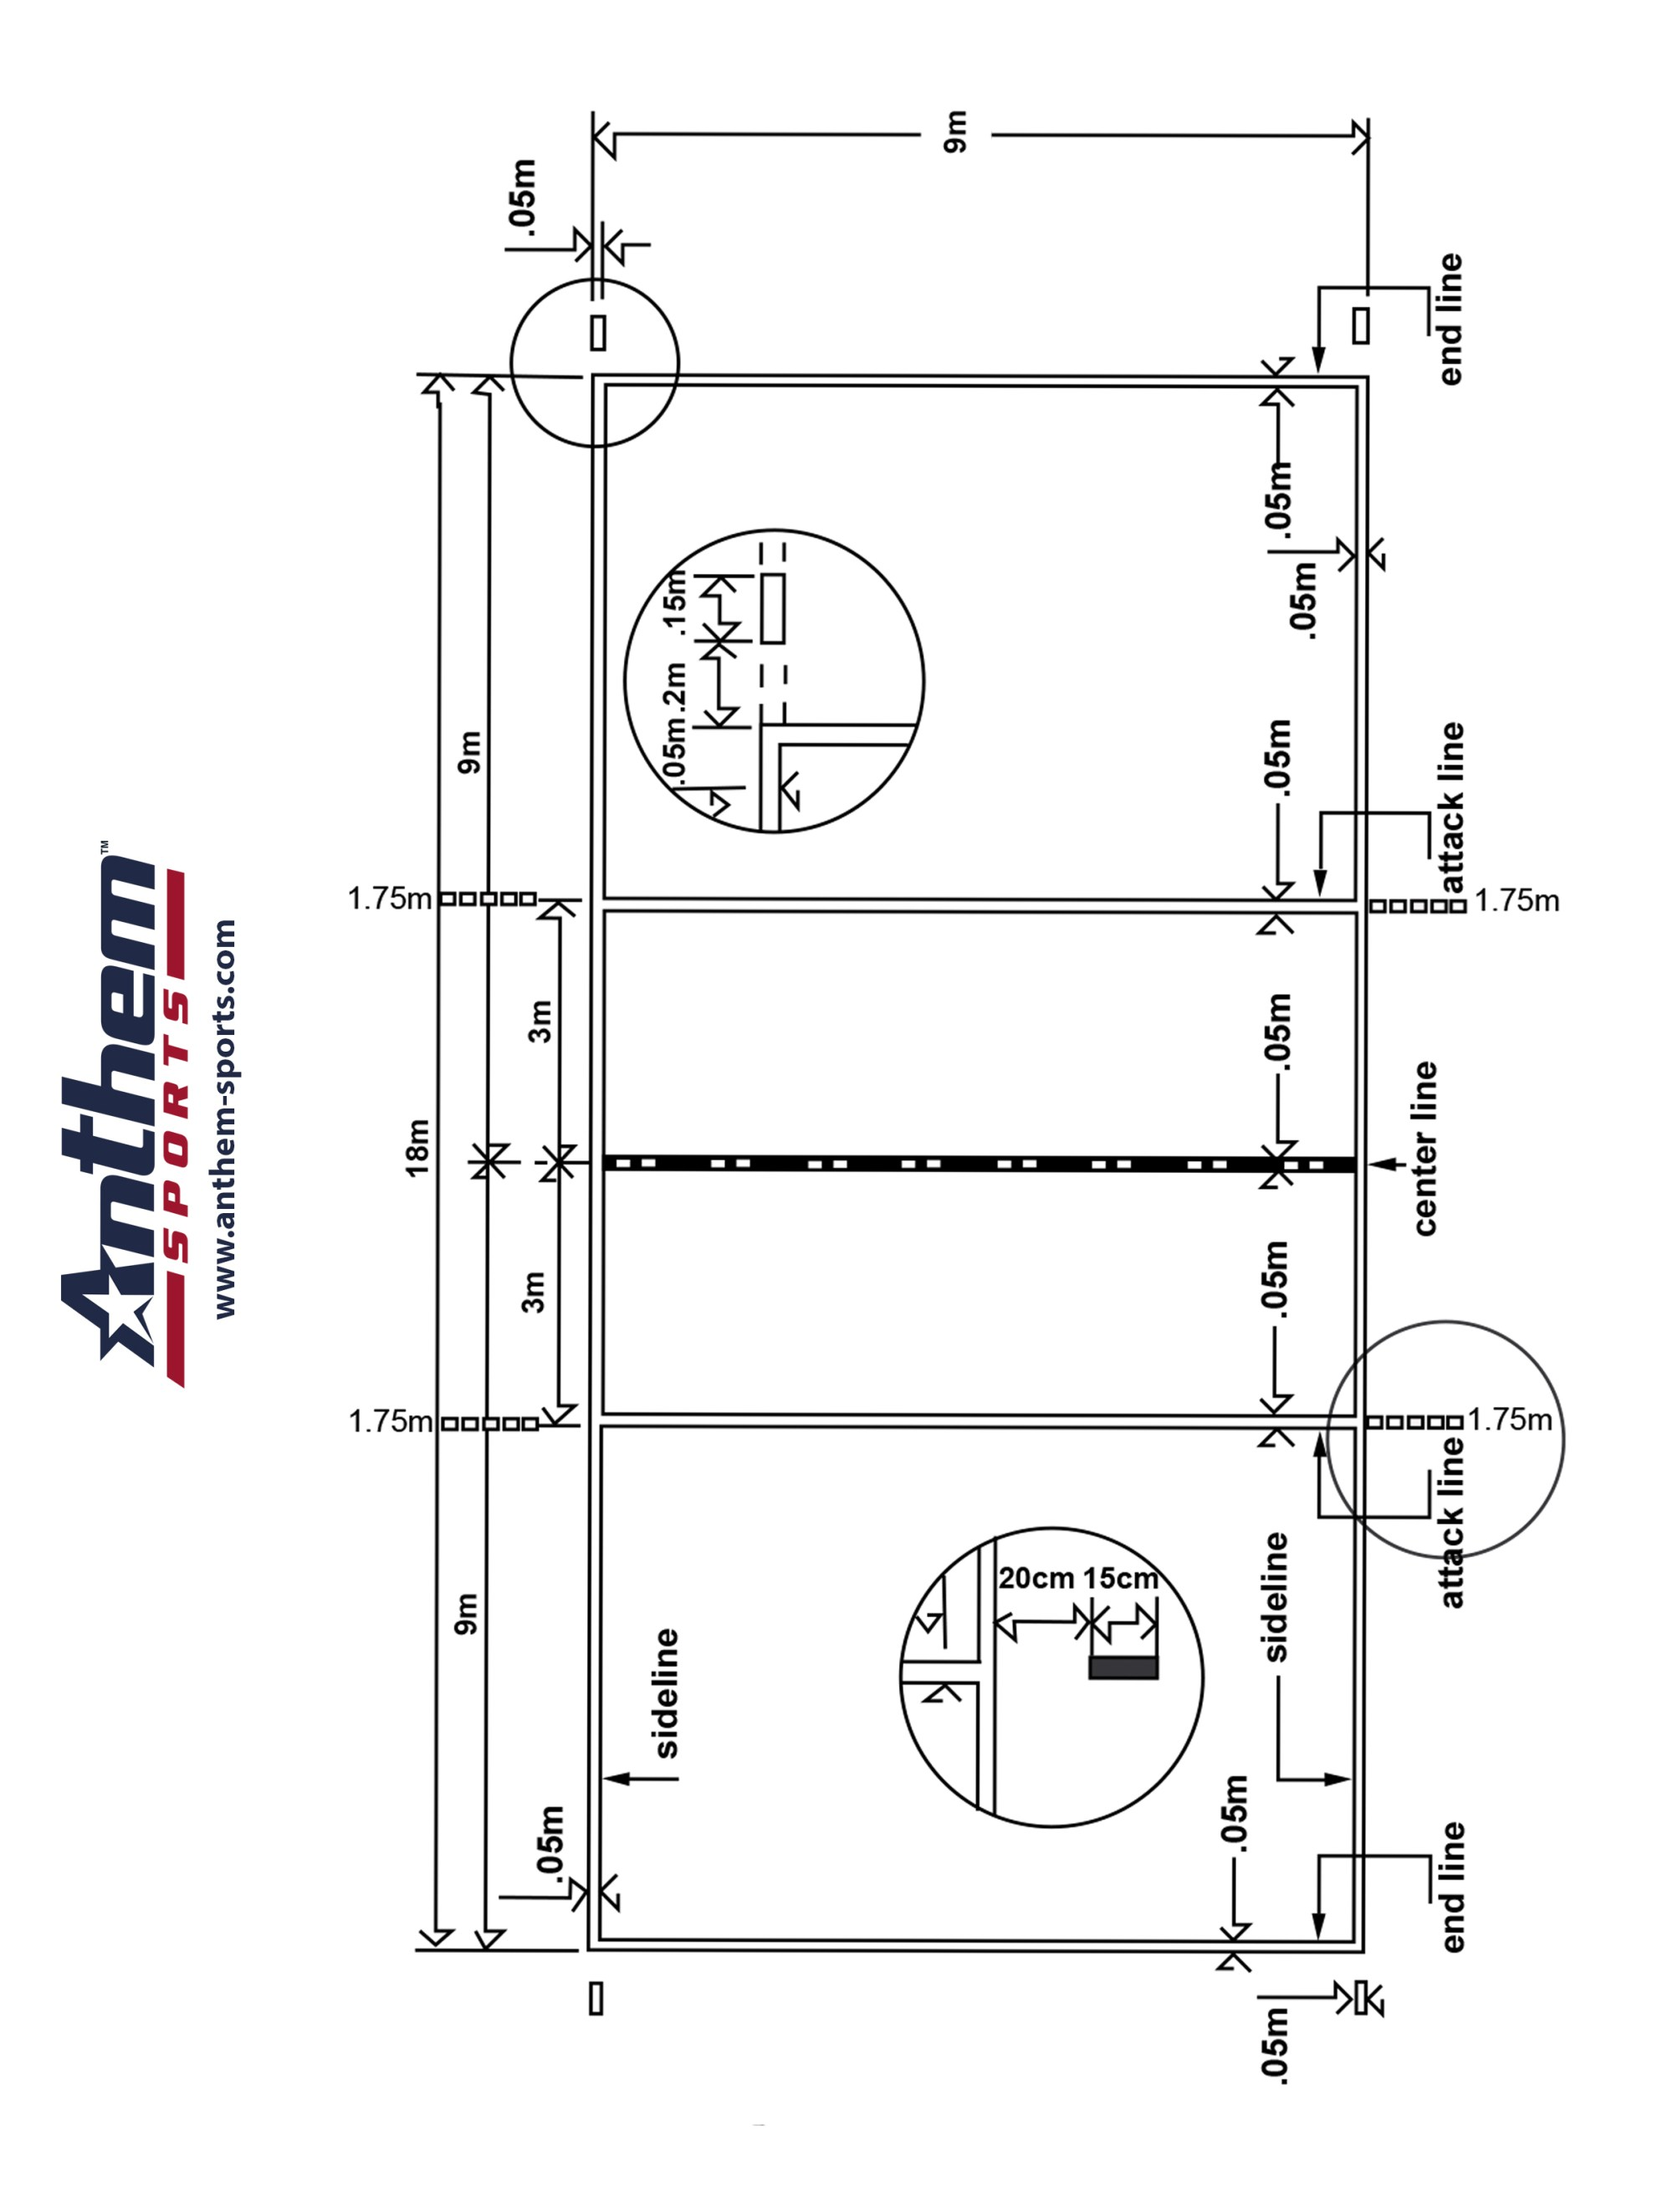 hight resolution of indoor volleyball diagram